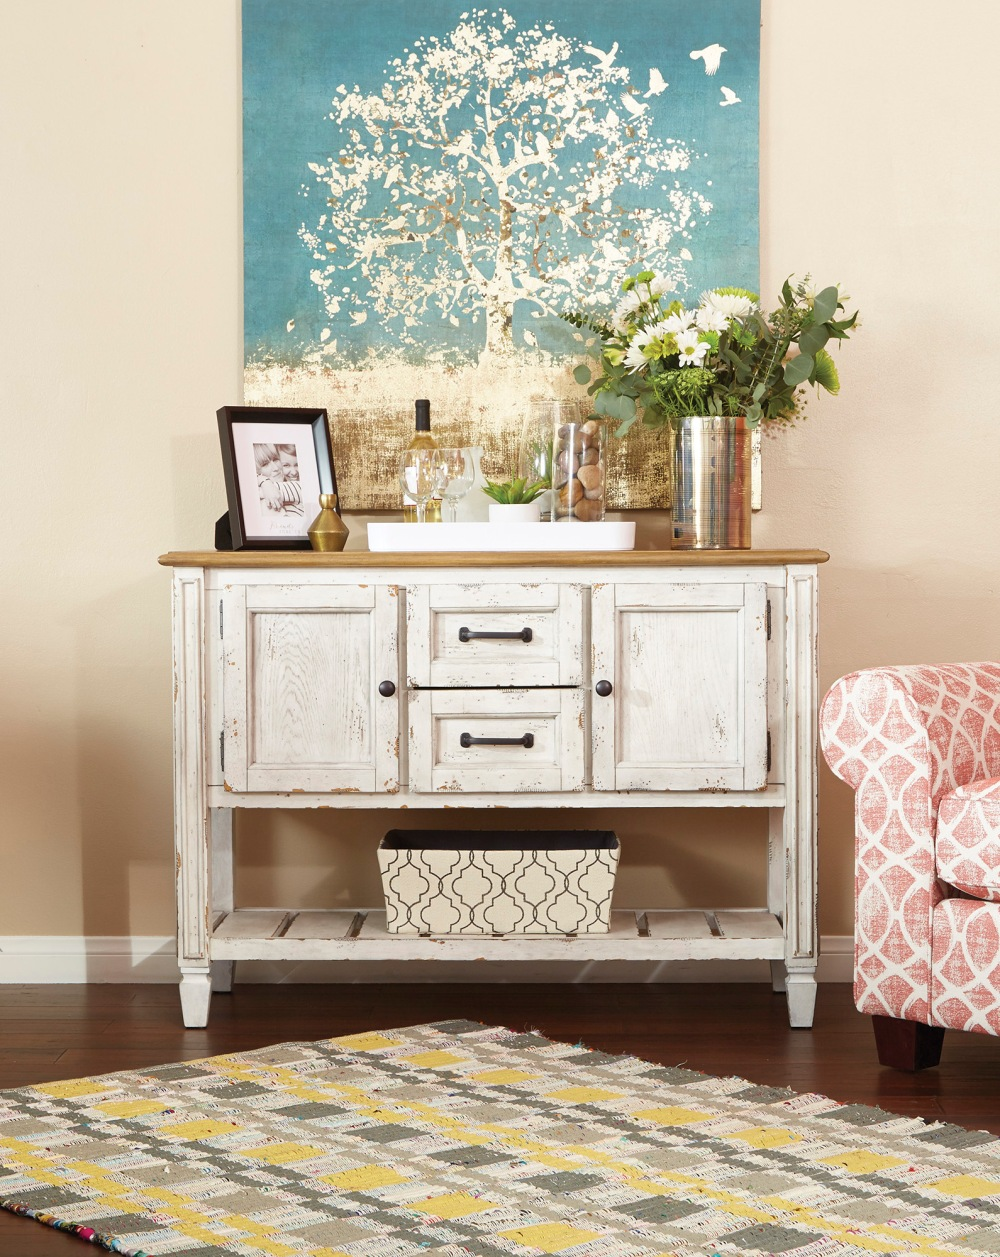 The newest way to get effortless shabby chic farmhouse style in the home is with Meadowlark by @curiaandco.